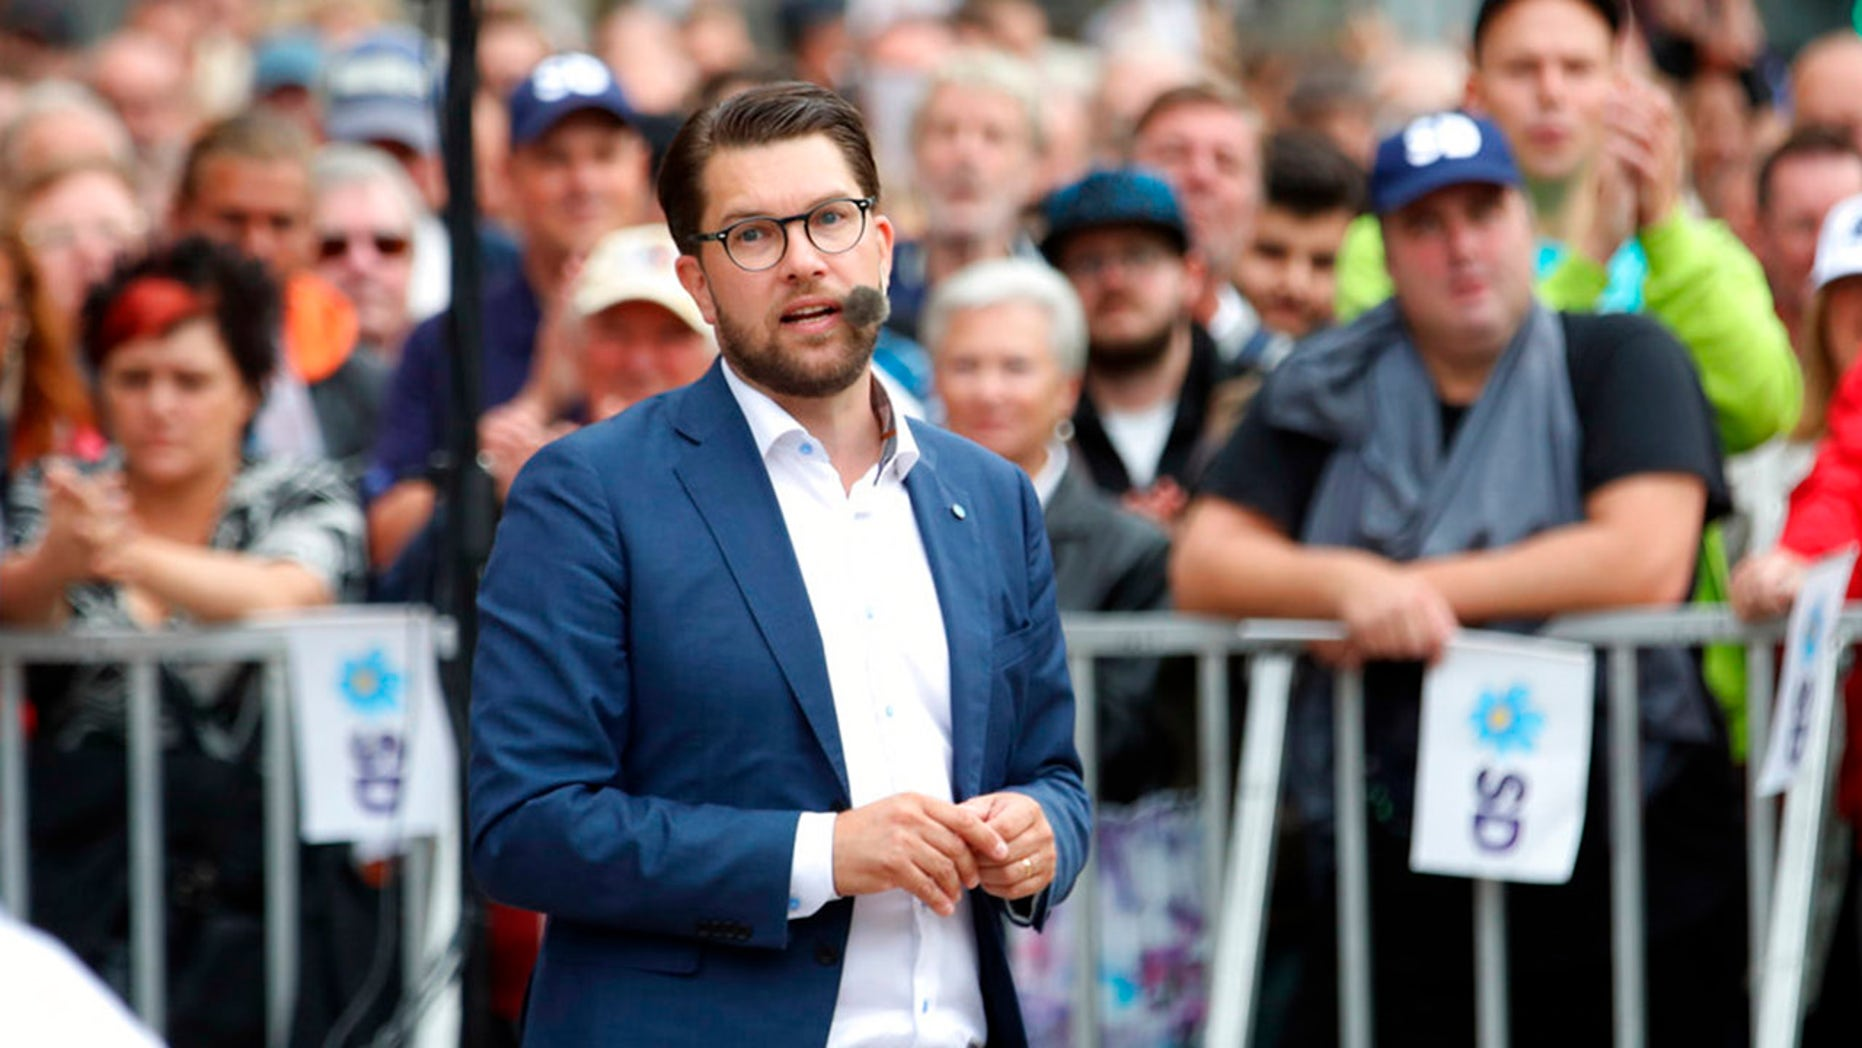 Jimme Akesson's Sweden Democrats is likely to be the big winner in Sunday's elections.